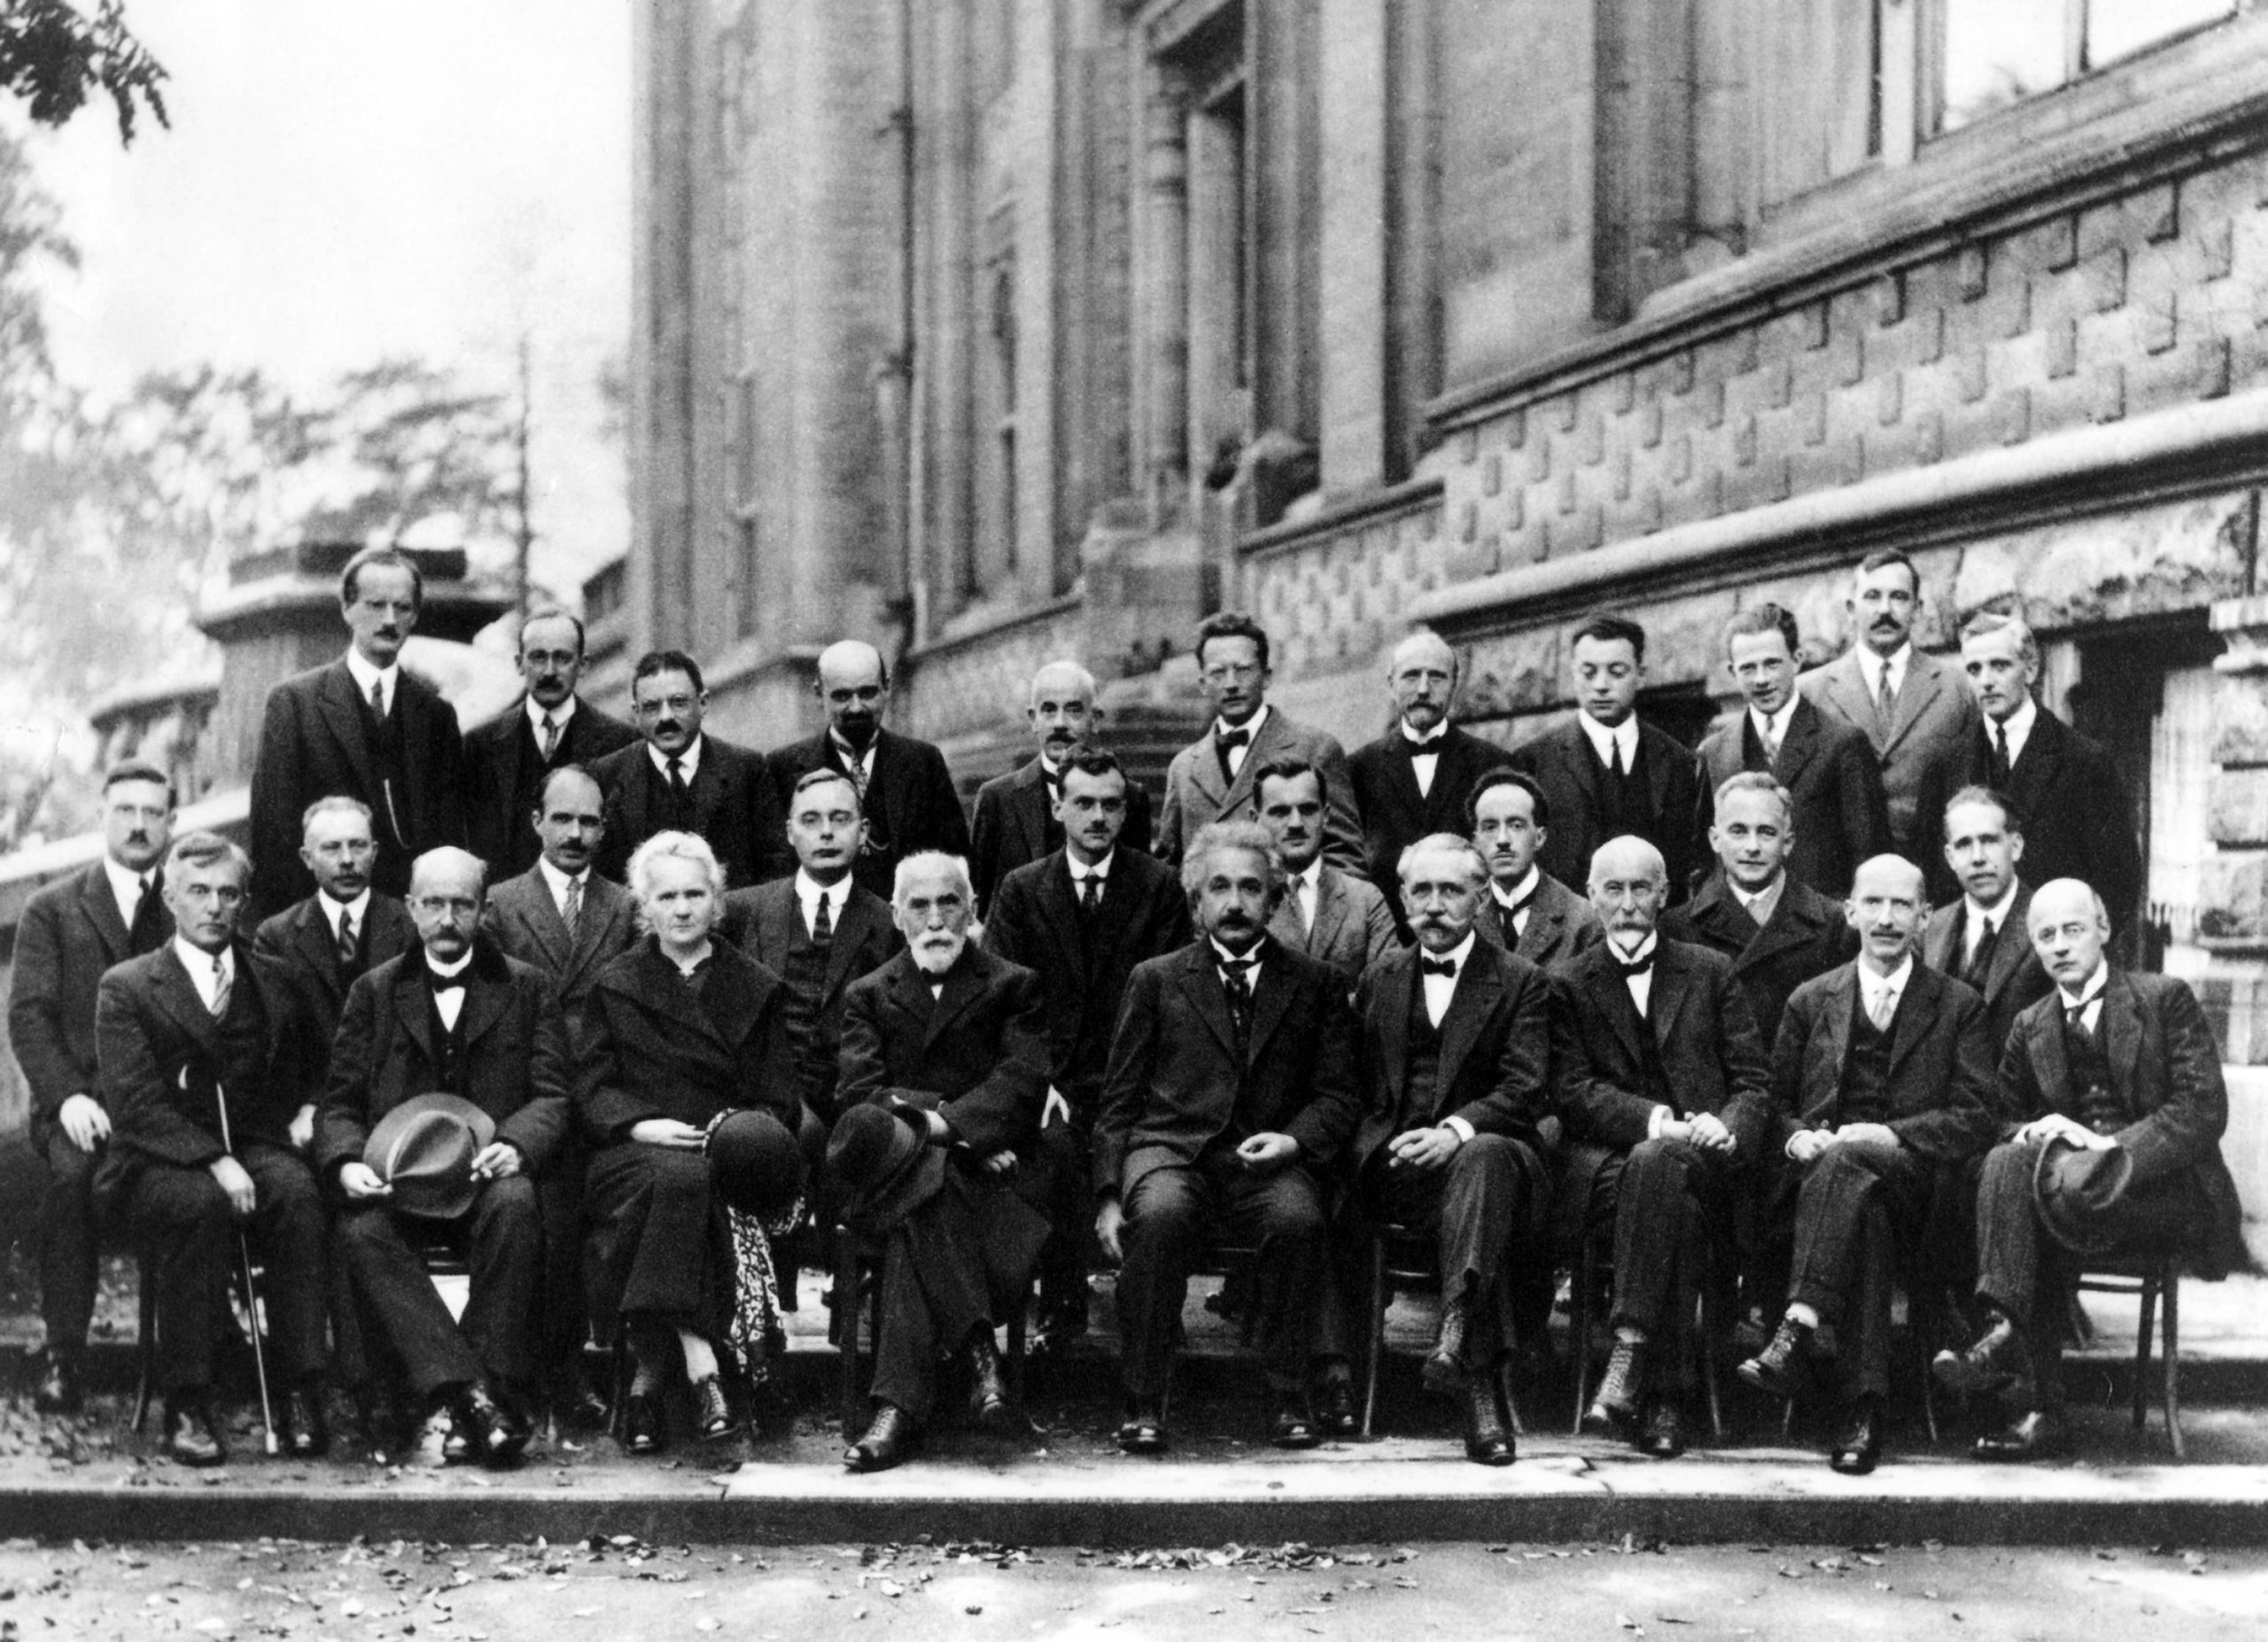 Einstein and colleagues at the 1927 Solvay Conference in Brussels on quantum mechanics, an extraordinary gathering of such famous physicists as M. Planck, Marie Curie, H. A. Lorentz, Niels Bohr, Erwin Shroedinger, W. Pauli, and W. Heisenberg